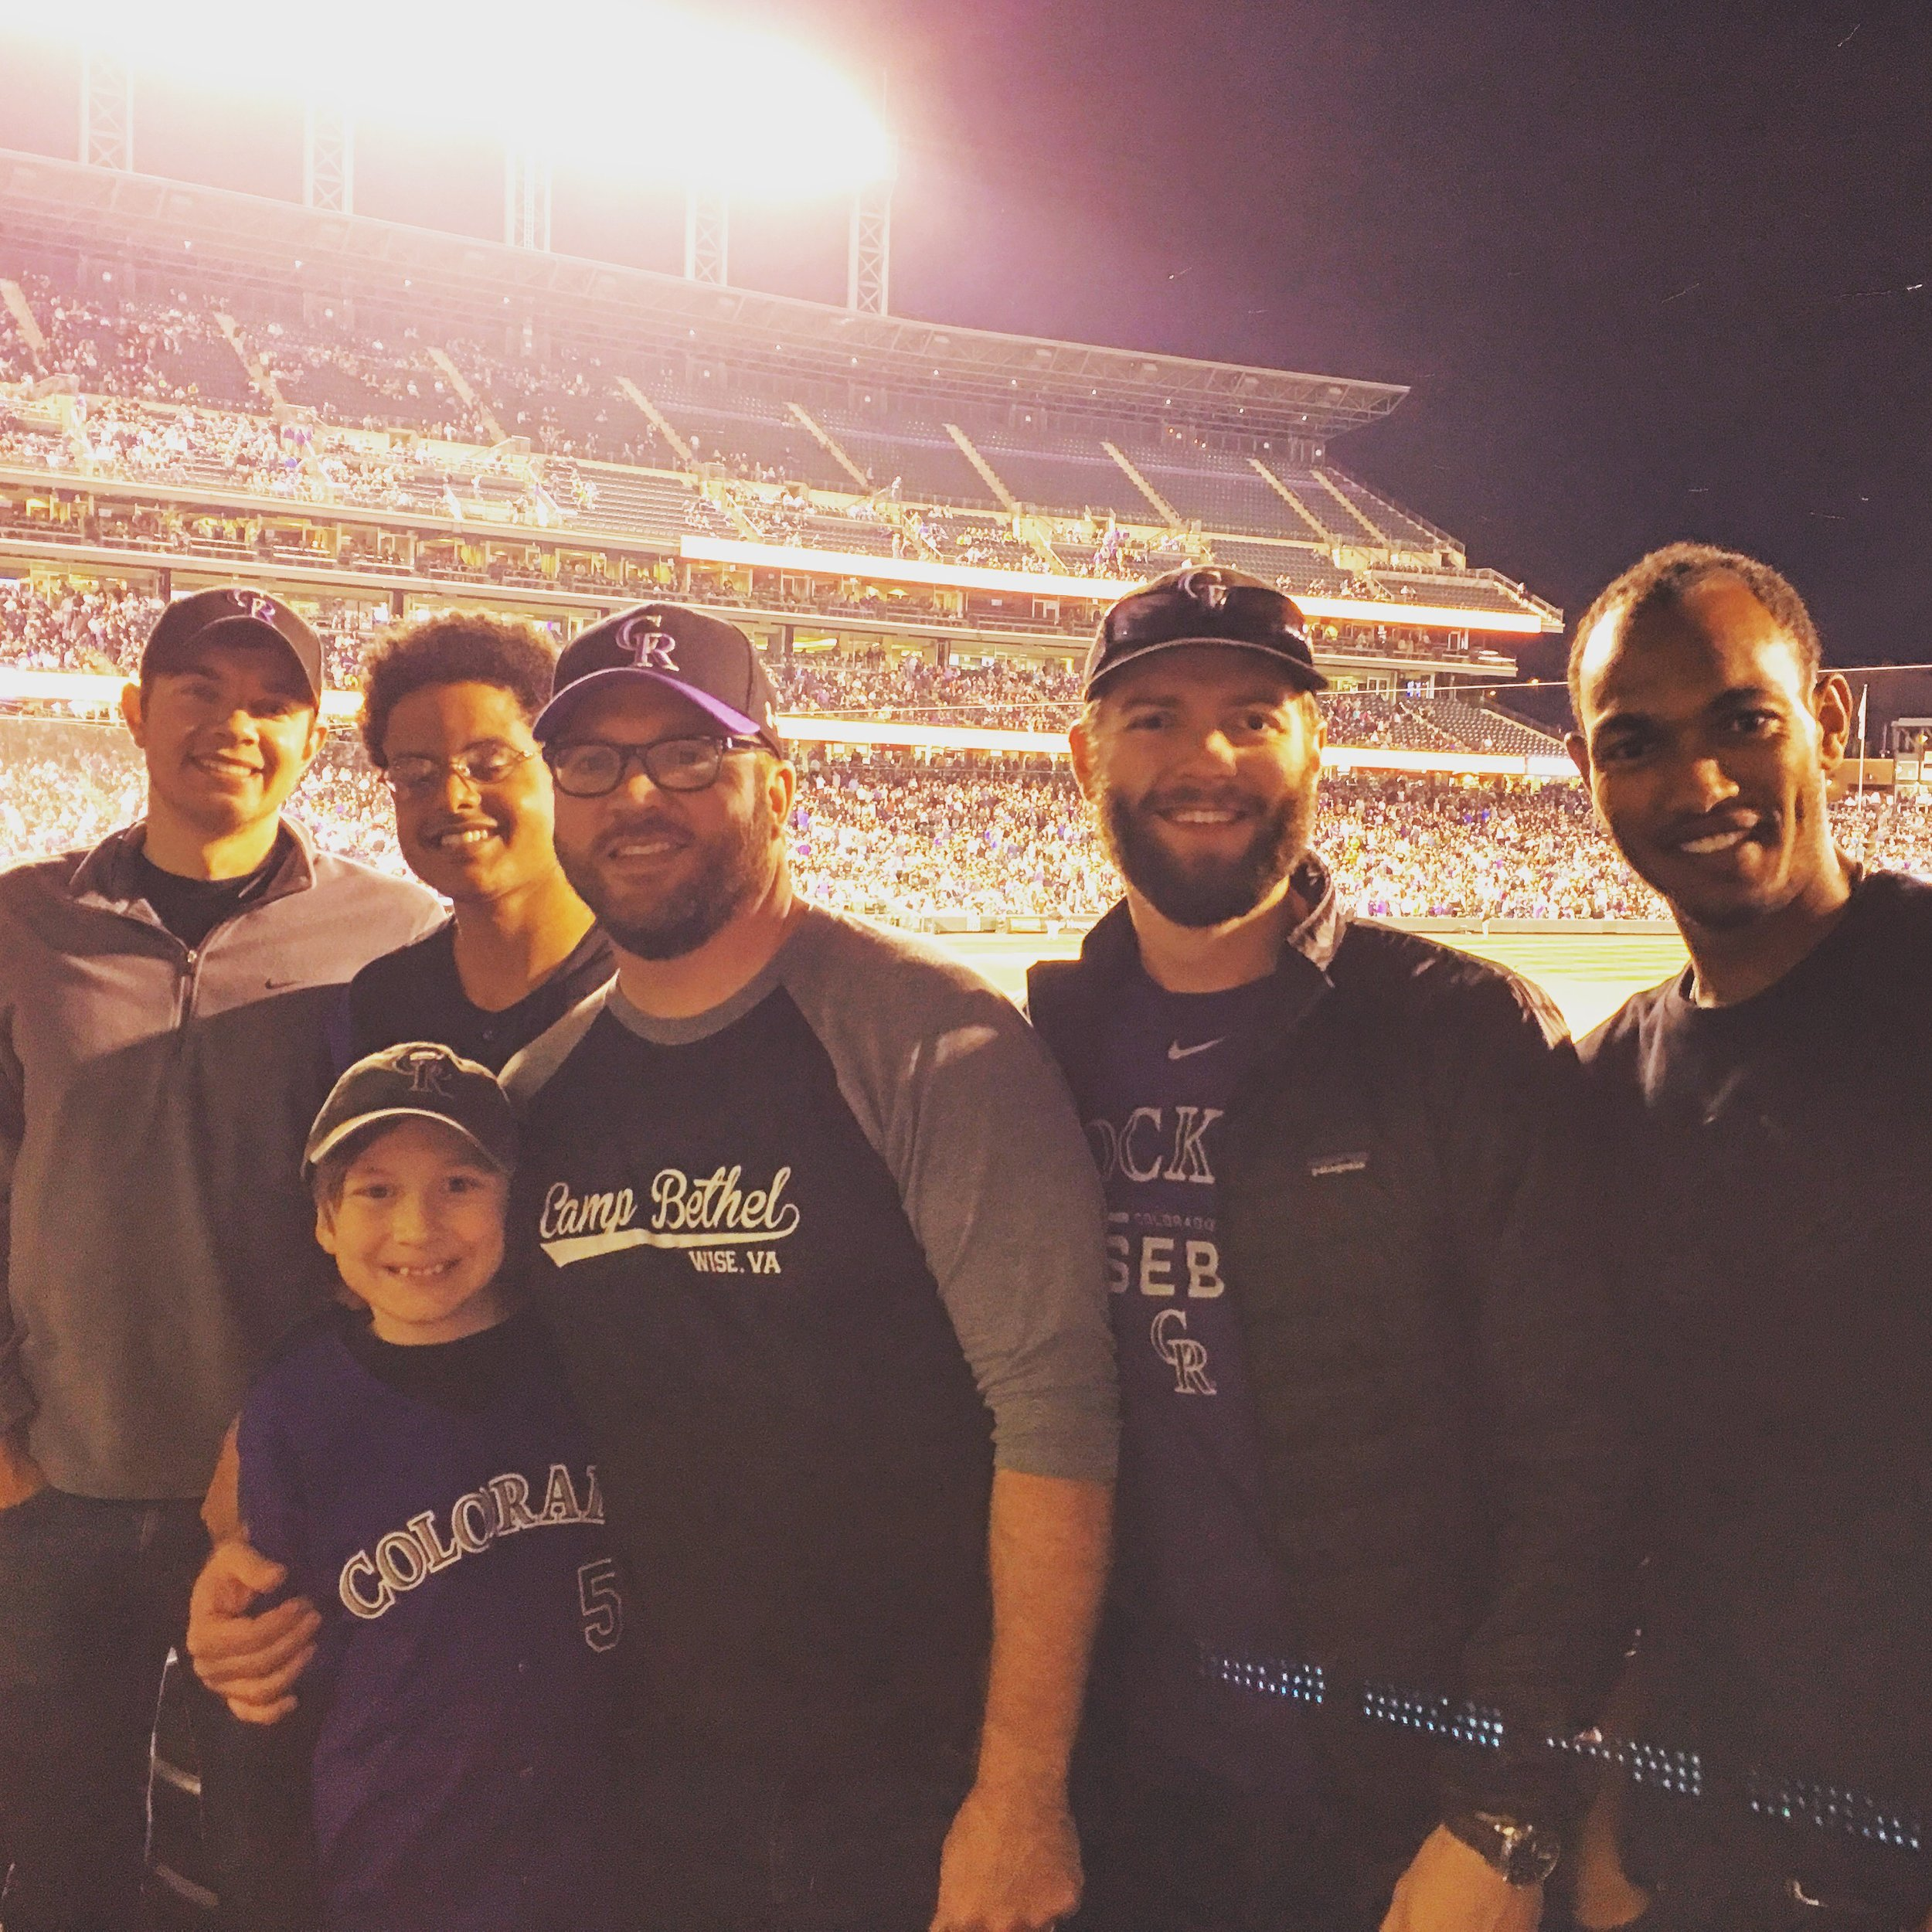 Enjoying a Rockies game with a few Oaks members & a couple Ethiopian friends from our neighborhood who are becoming part of our community.